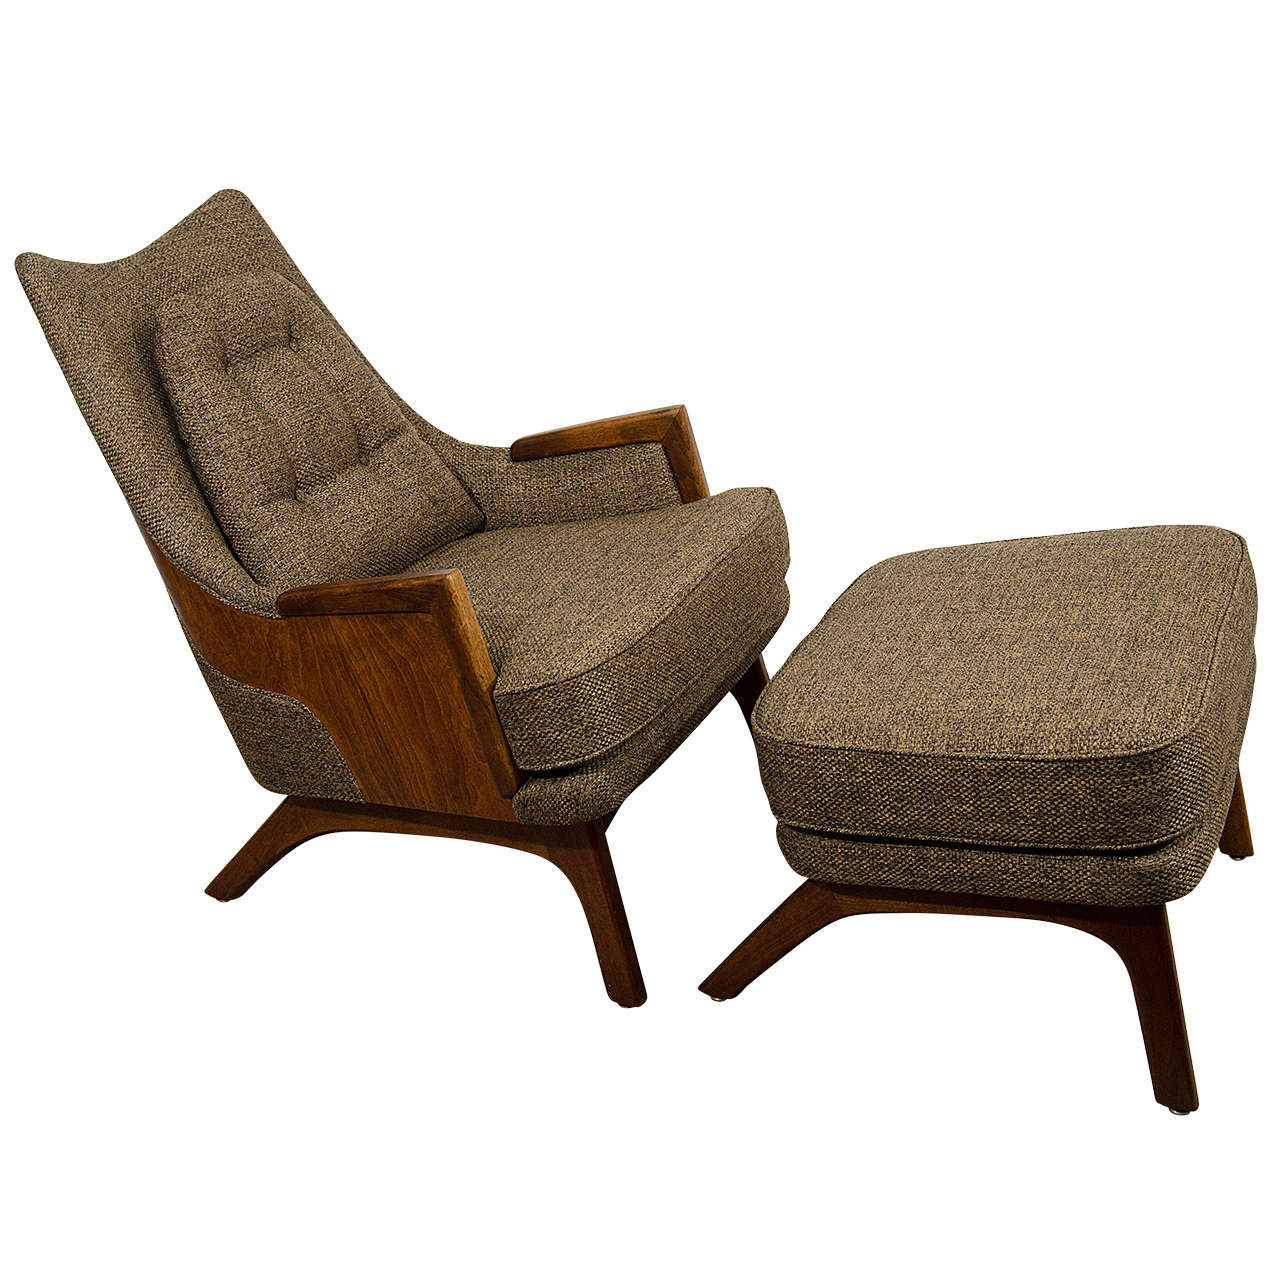 Midcentury Adrian Pearsall Lounge Chair with Ottoman at 1stdibs